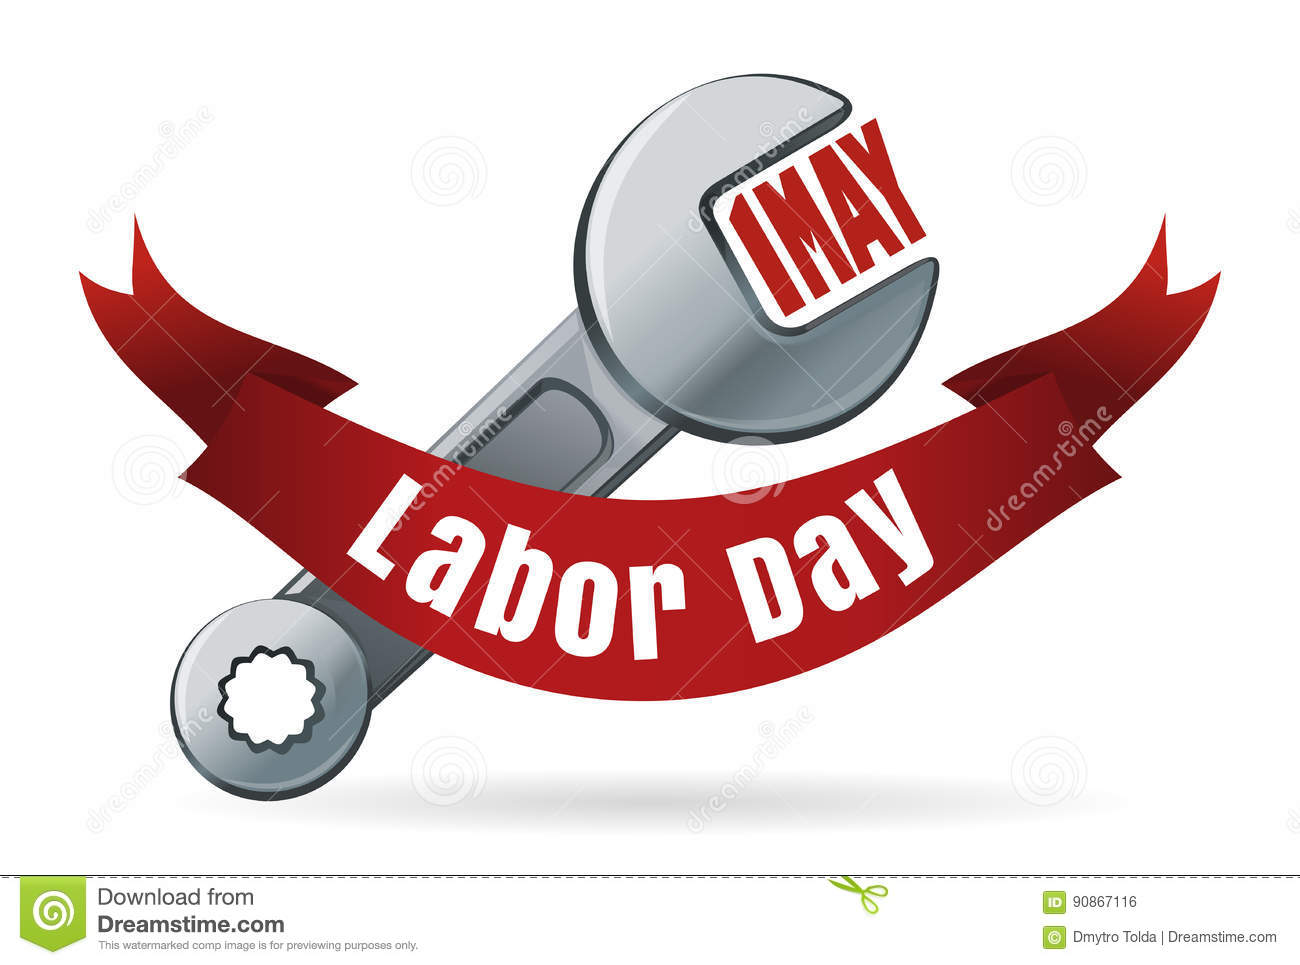 Labor day may 1 international workers day stock vector labor day may 1 international workers day buycottarizona Choice Image